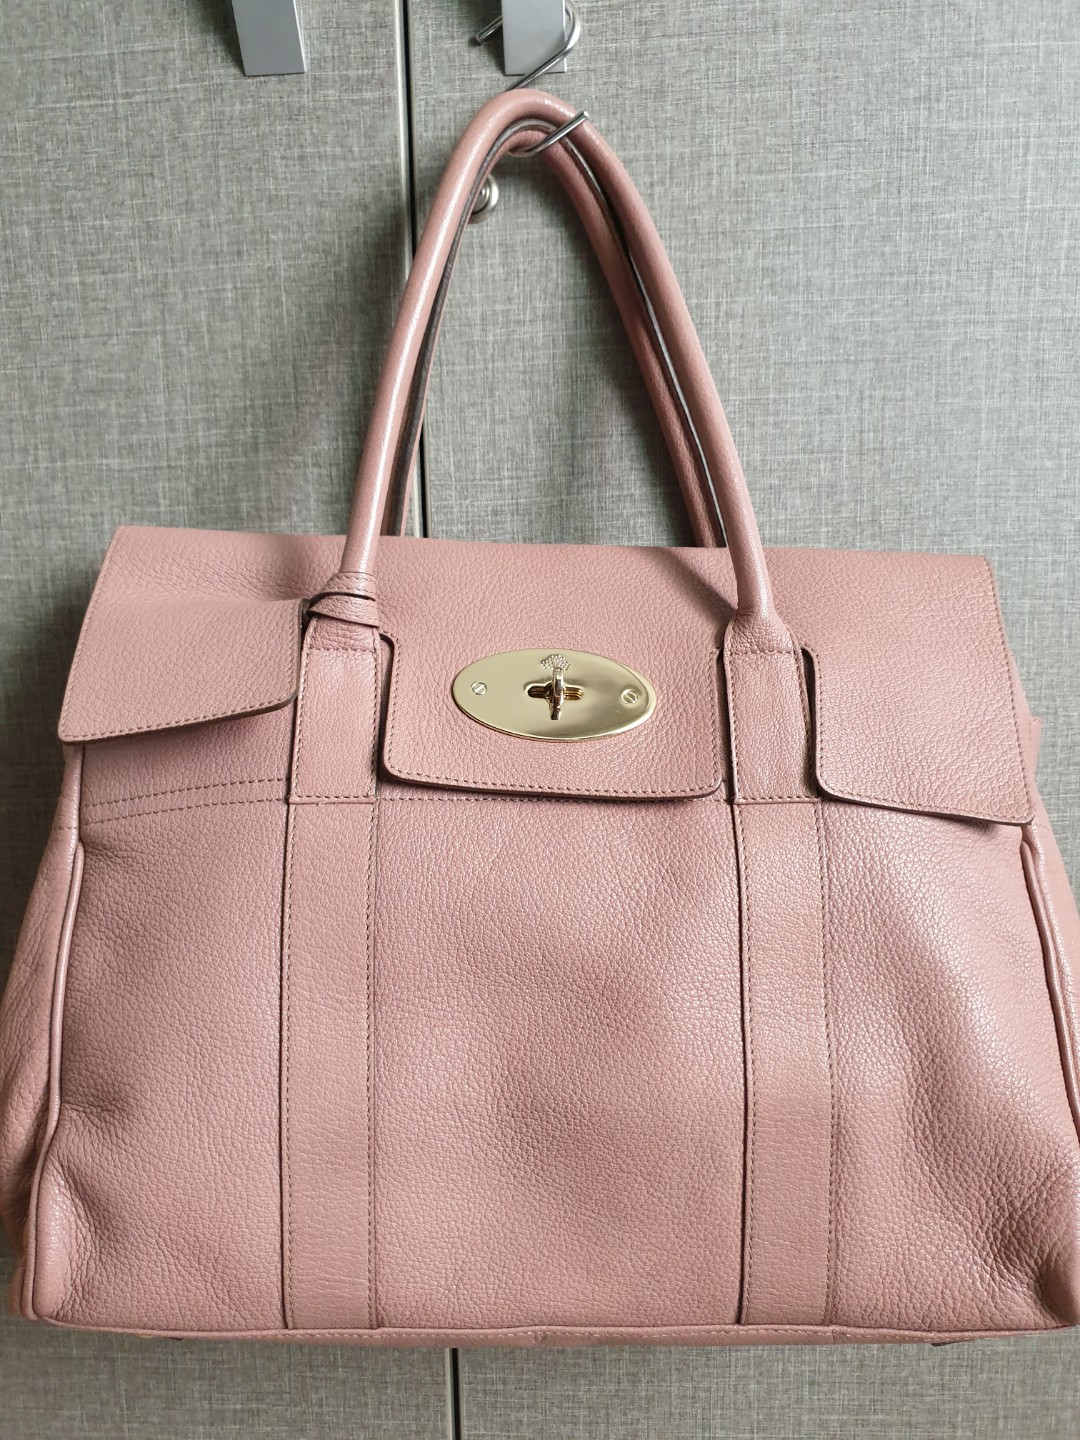 692dd59009 Authentic - Mulberry Bayswater